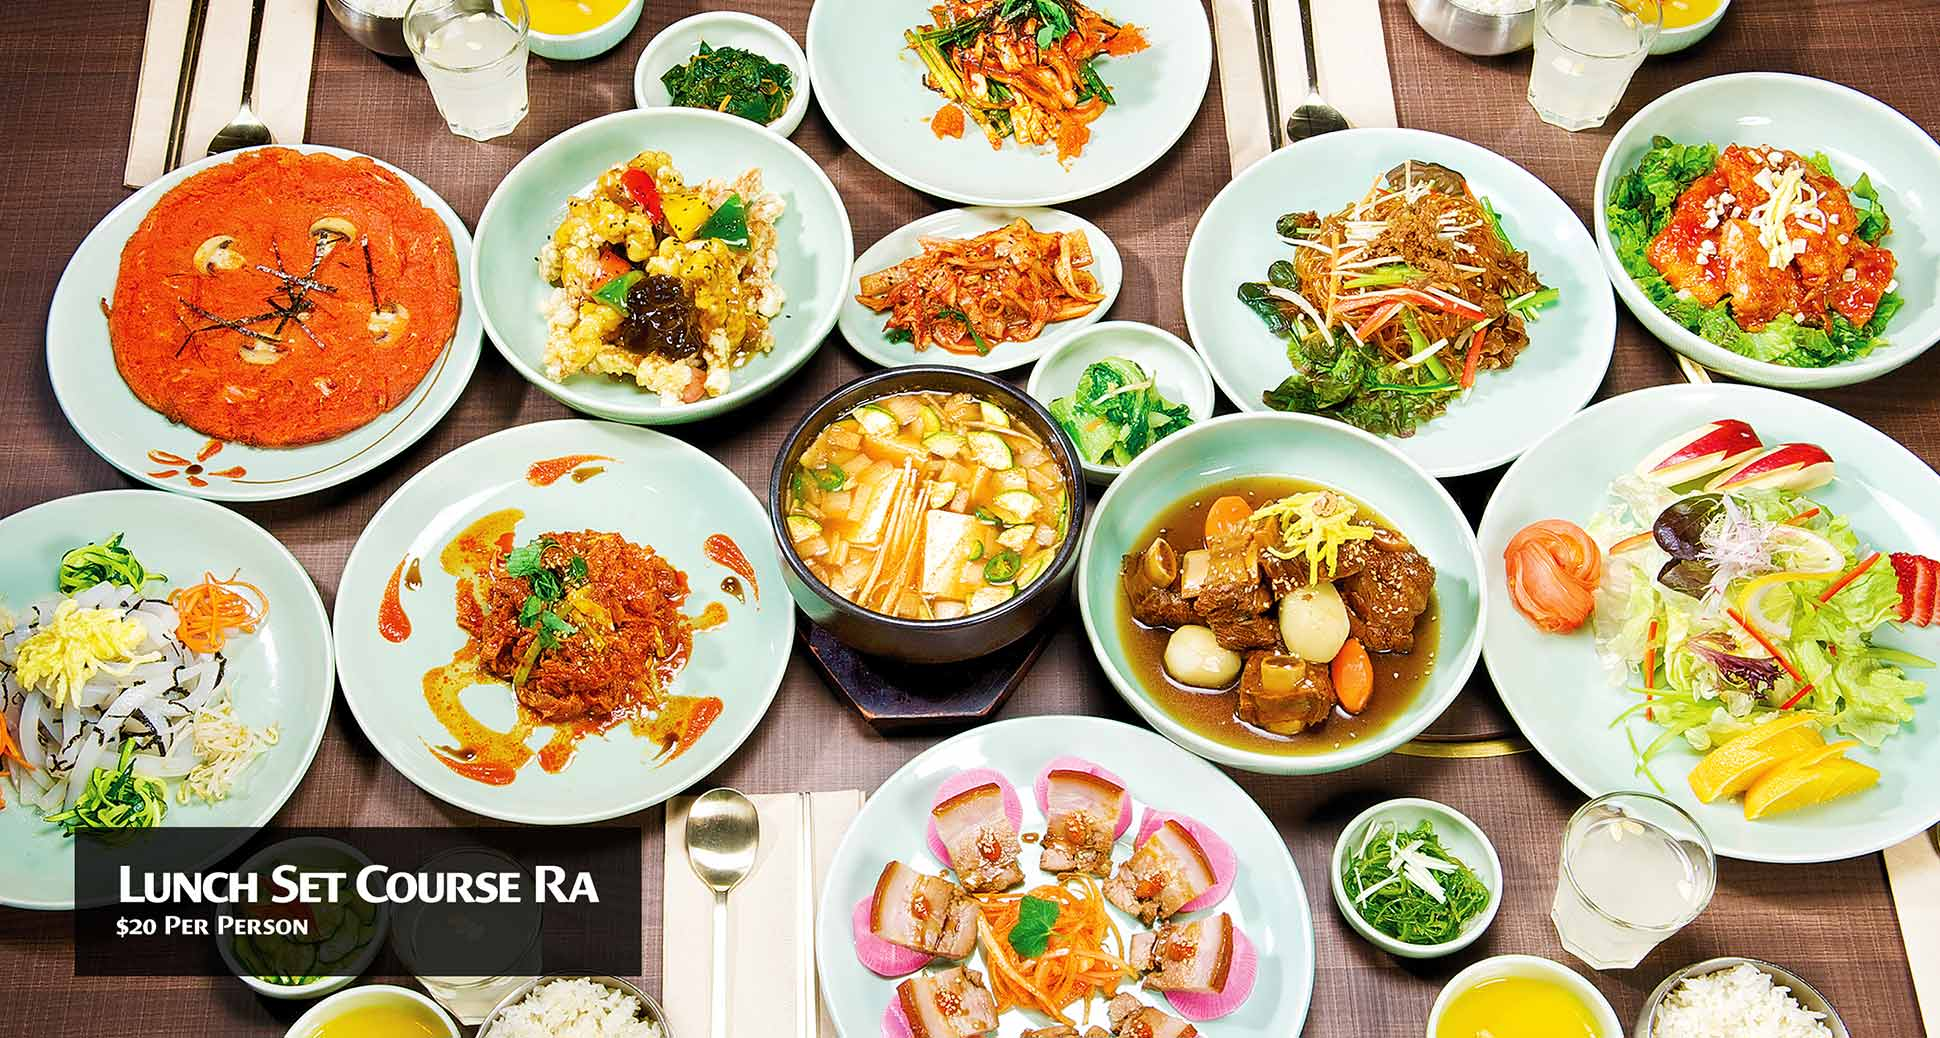 Come and enjoy the last long weekend of summer at sura korean Cuisine!